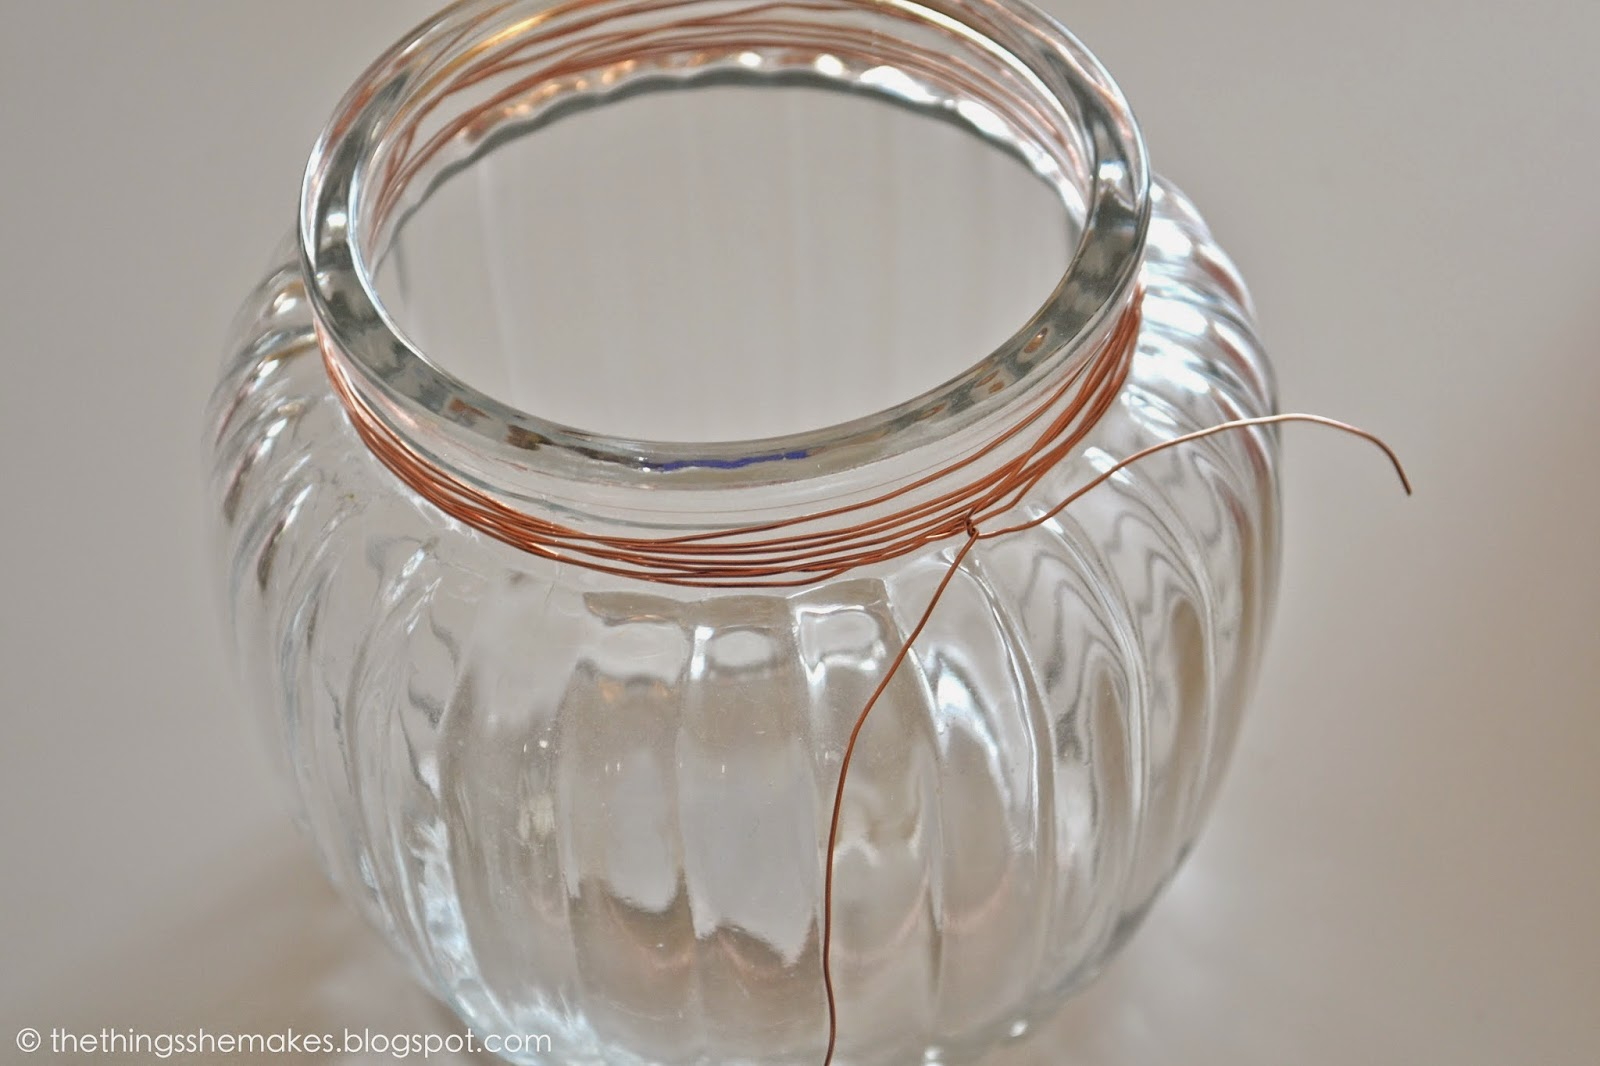 How To Make a Copper Wire Wrapped Jar | The Things She Makes